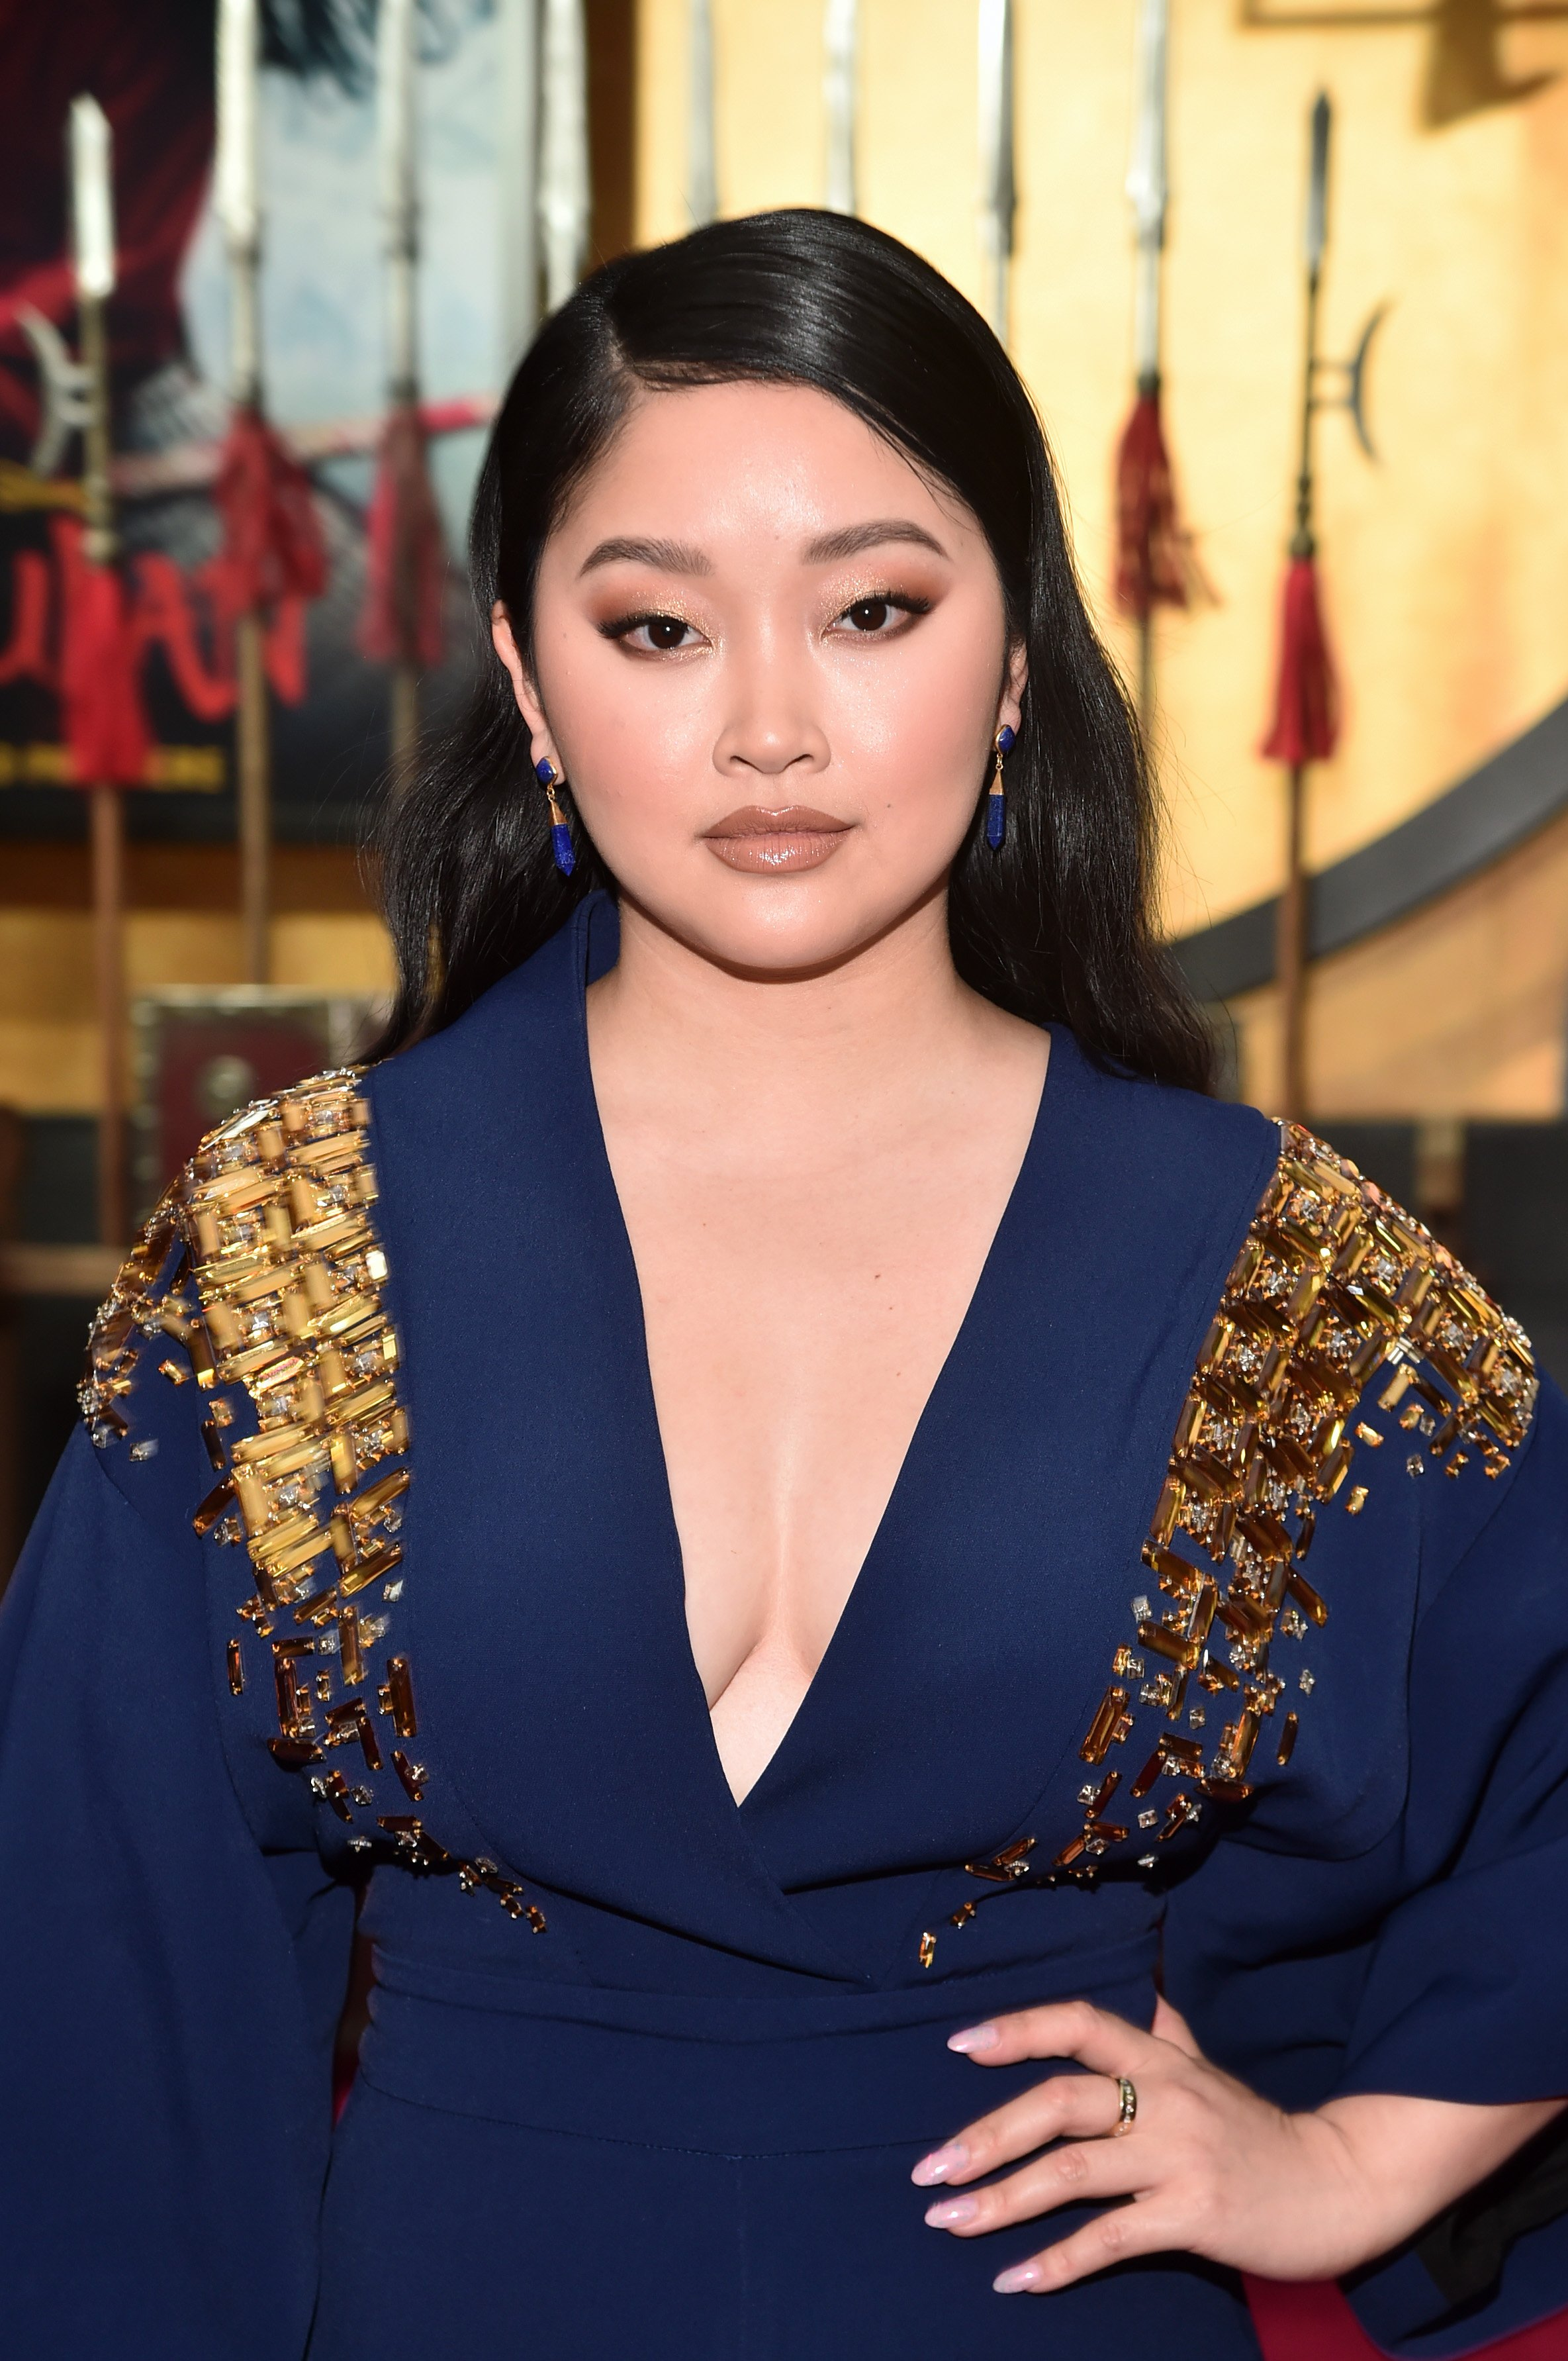 Lana Condor attends the World Premiere of Disney's 'MULAN' at the Dolby Theater on March 09, 2020 in Hollywood, California | Photo: Getty Images